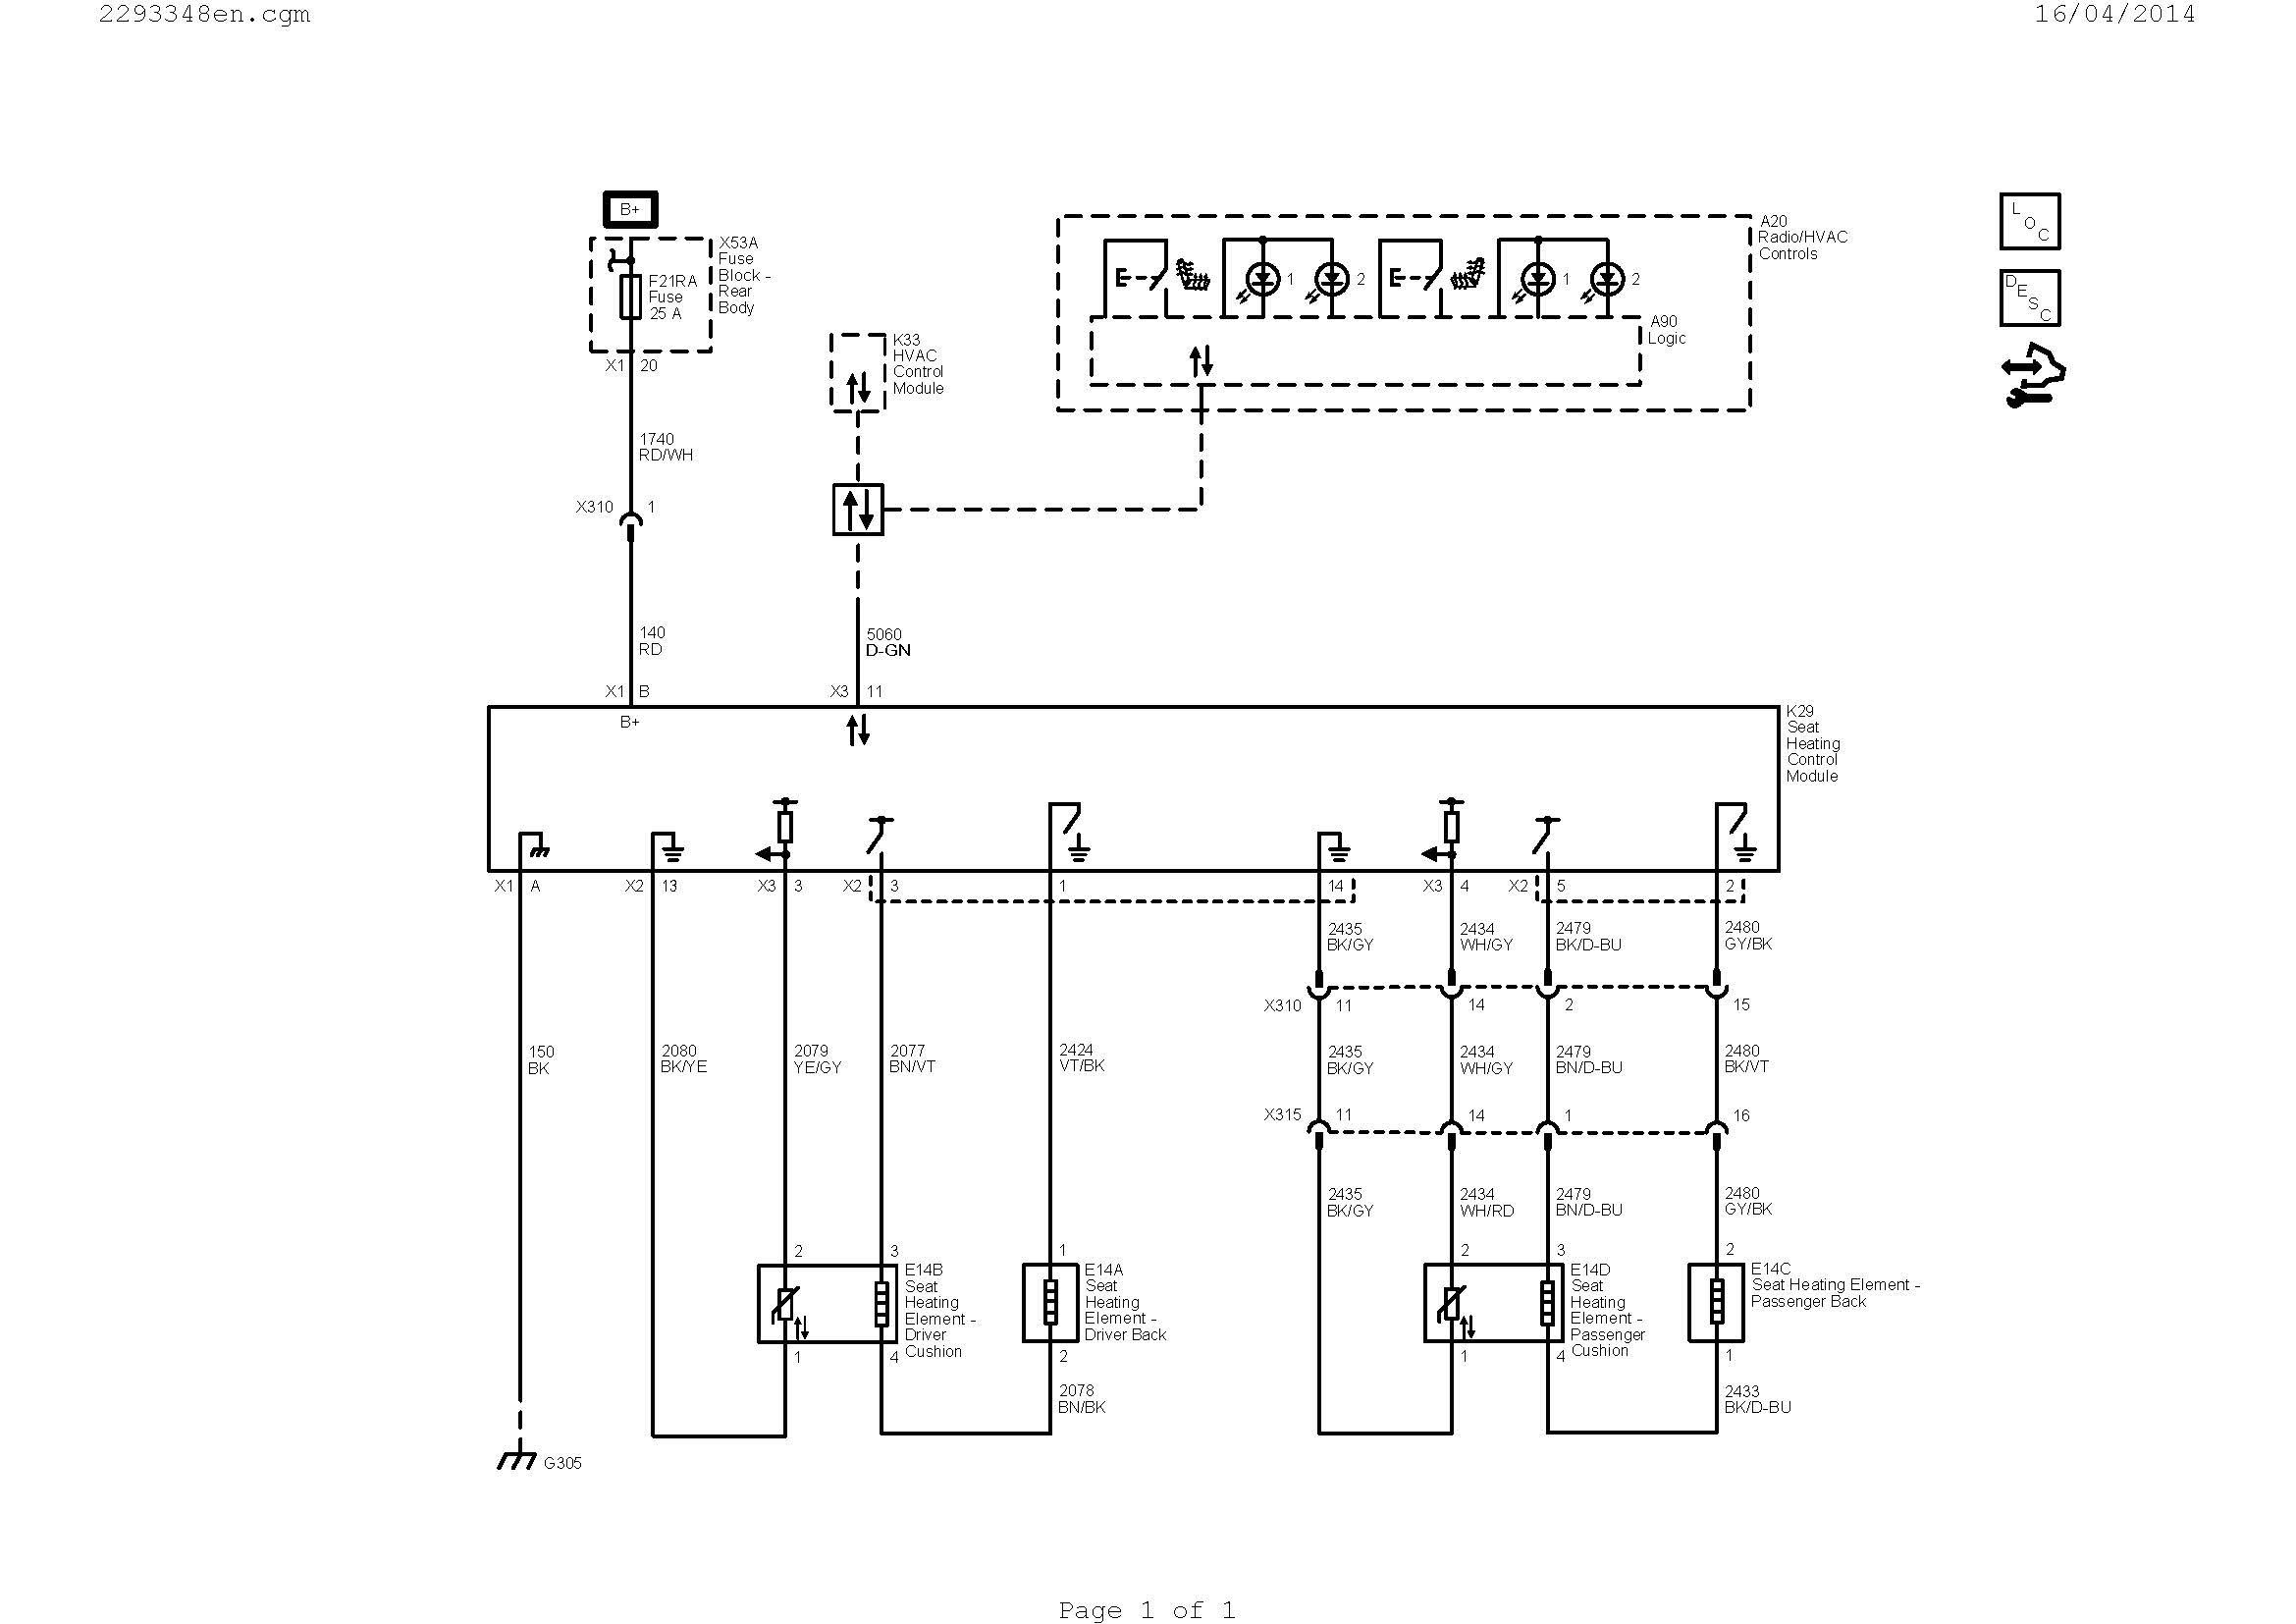 understanding electricity and wiring diagrams for hvac r kenmore 110 washer parts diagram infratech heater sample